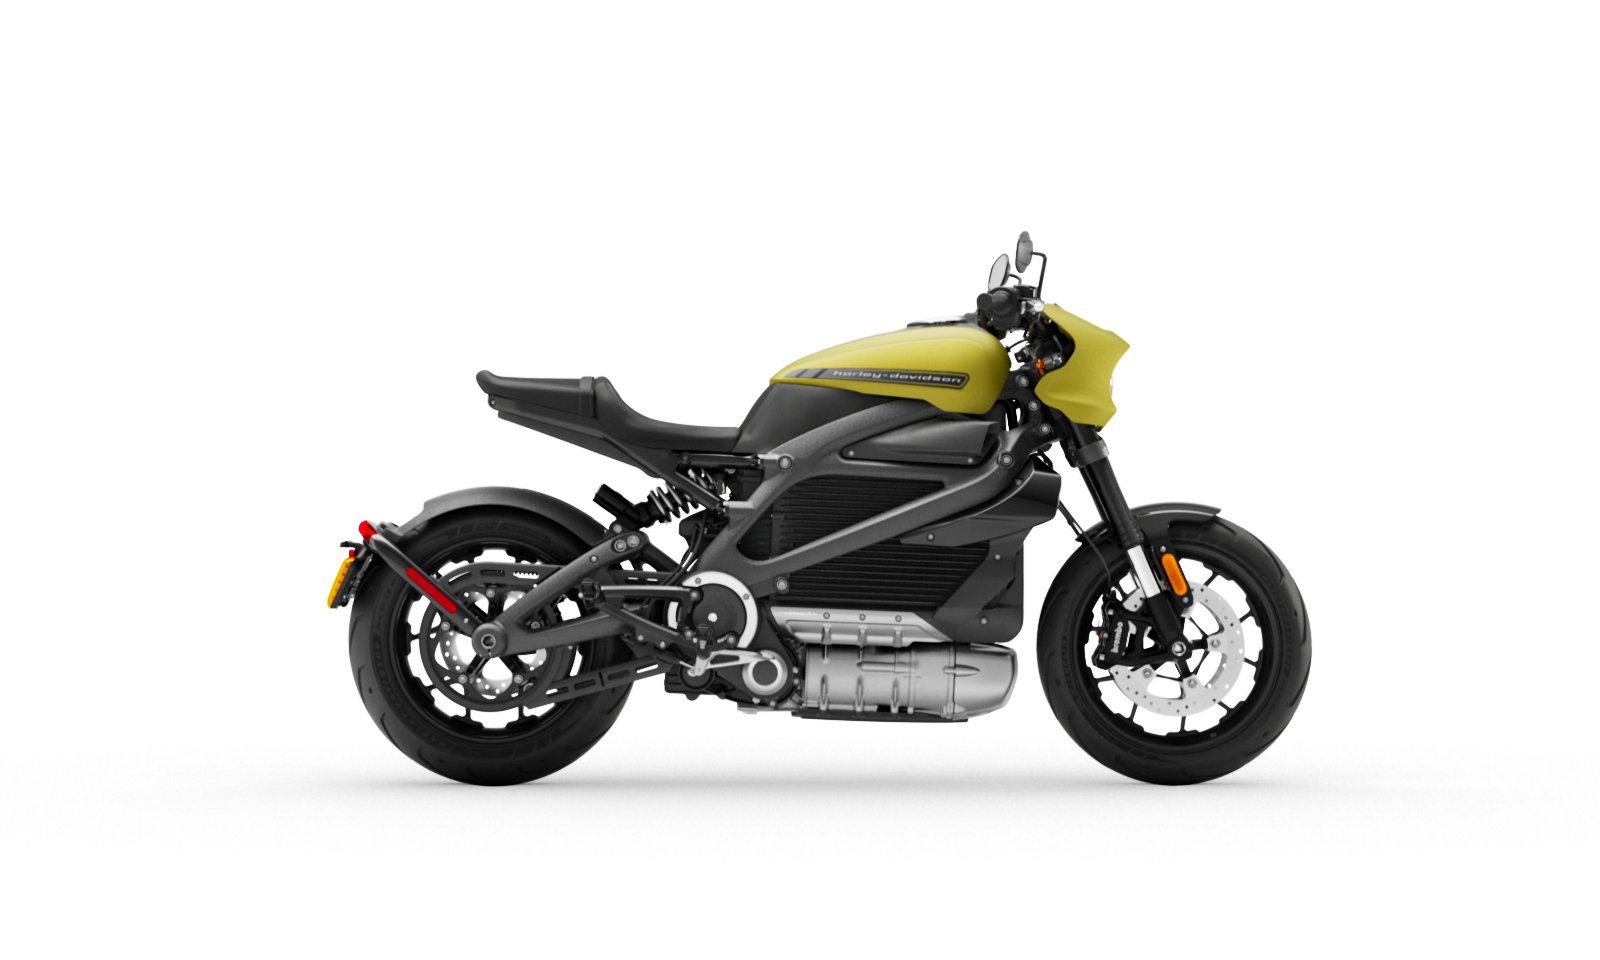 Harley-Davidson announces LiveWire details, StayCyc purchase